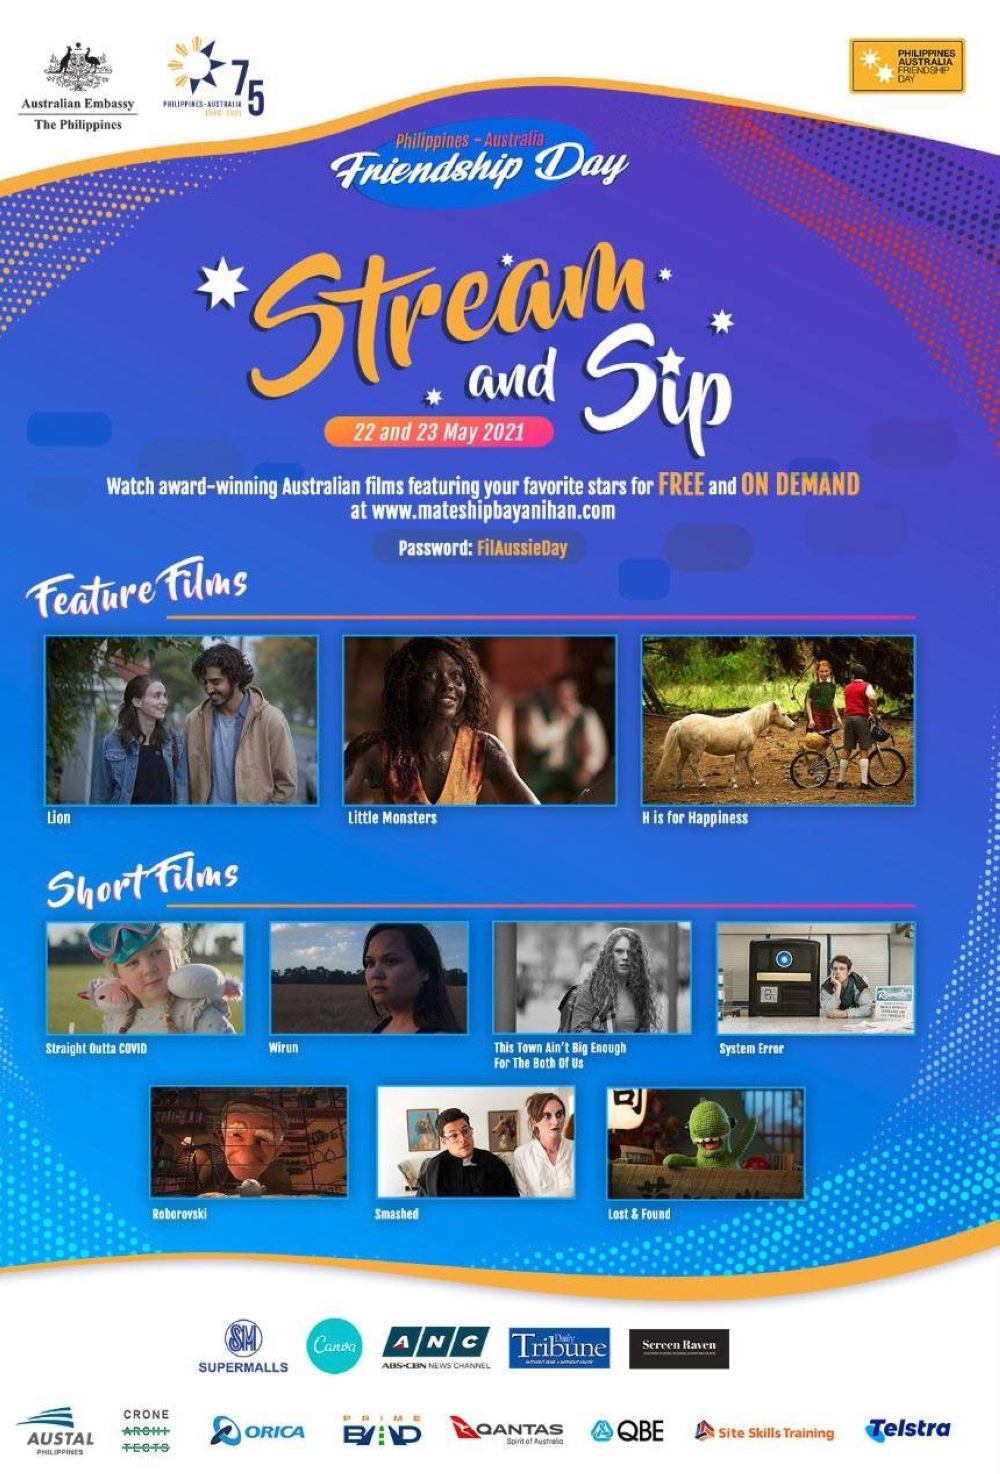 On May 22 and 23, the Australian Embassy will host an online weekend 'Stream & Sip Fesitval' on mateshipandbayanihan.com. The festival will see the Asian premiere of three full-length Australian Films: Lion, an Australian biographical drama based on the book A Long Way Home, and stars Nicole Kidman, Dev Patel, and Rooney Mara; Little Monsters, a zombie comedy film featuring Lupita Nyong'o, Alexander England and Josh Gad; and H is for Happiness, a classic family film based on the award-winning book, My Life As An Alphabet. The 'Stream and Sip' festival program will also feature a selection of seven short films from Flickerfest, Australia's only Academy® Award accredited and BAFTA recognised Short Film festival. The embassy will also be offering a 'Taste of Australia' experience by bringing together online retailers of the freshest and finest Australian fruits, food, and beverage.